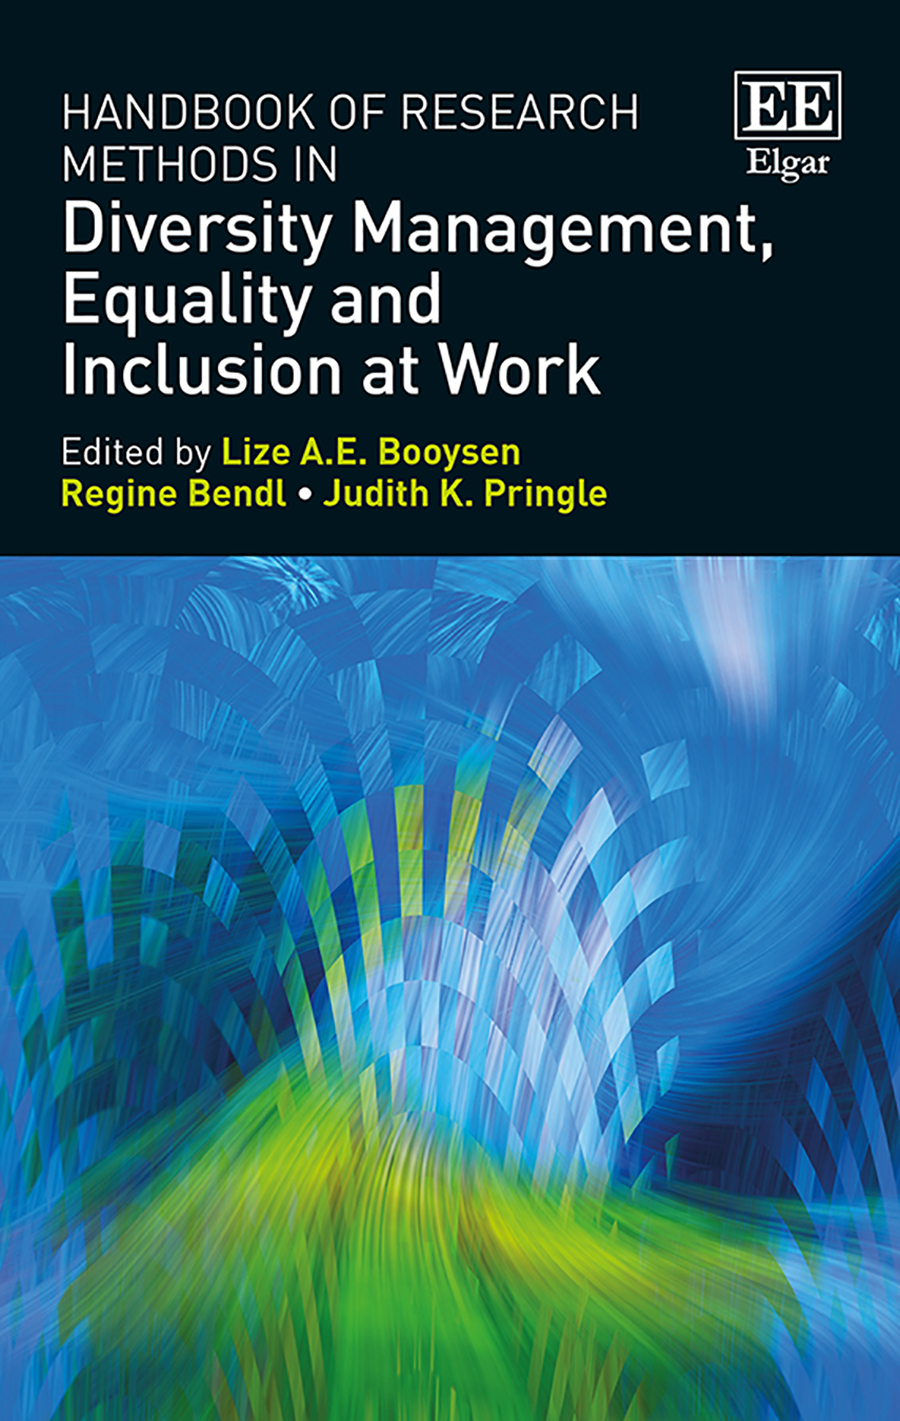 Download Ebook Handbook of Research Methods in Diversity Management, Equality and Inclusion at Work by Lize A.E. Booysen Pdf